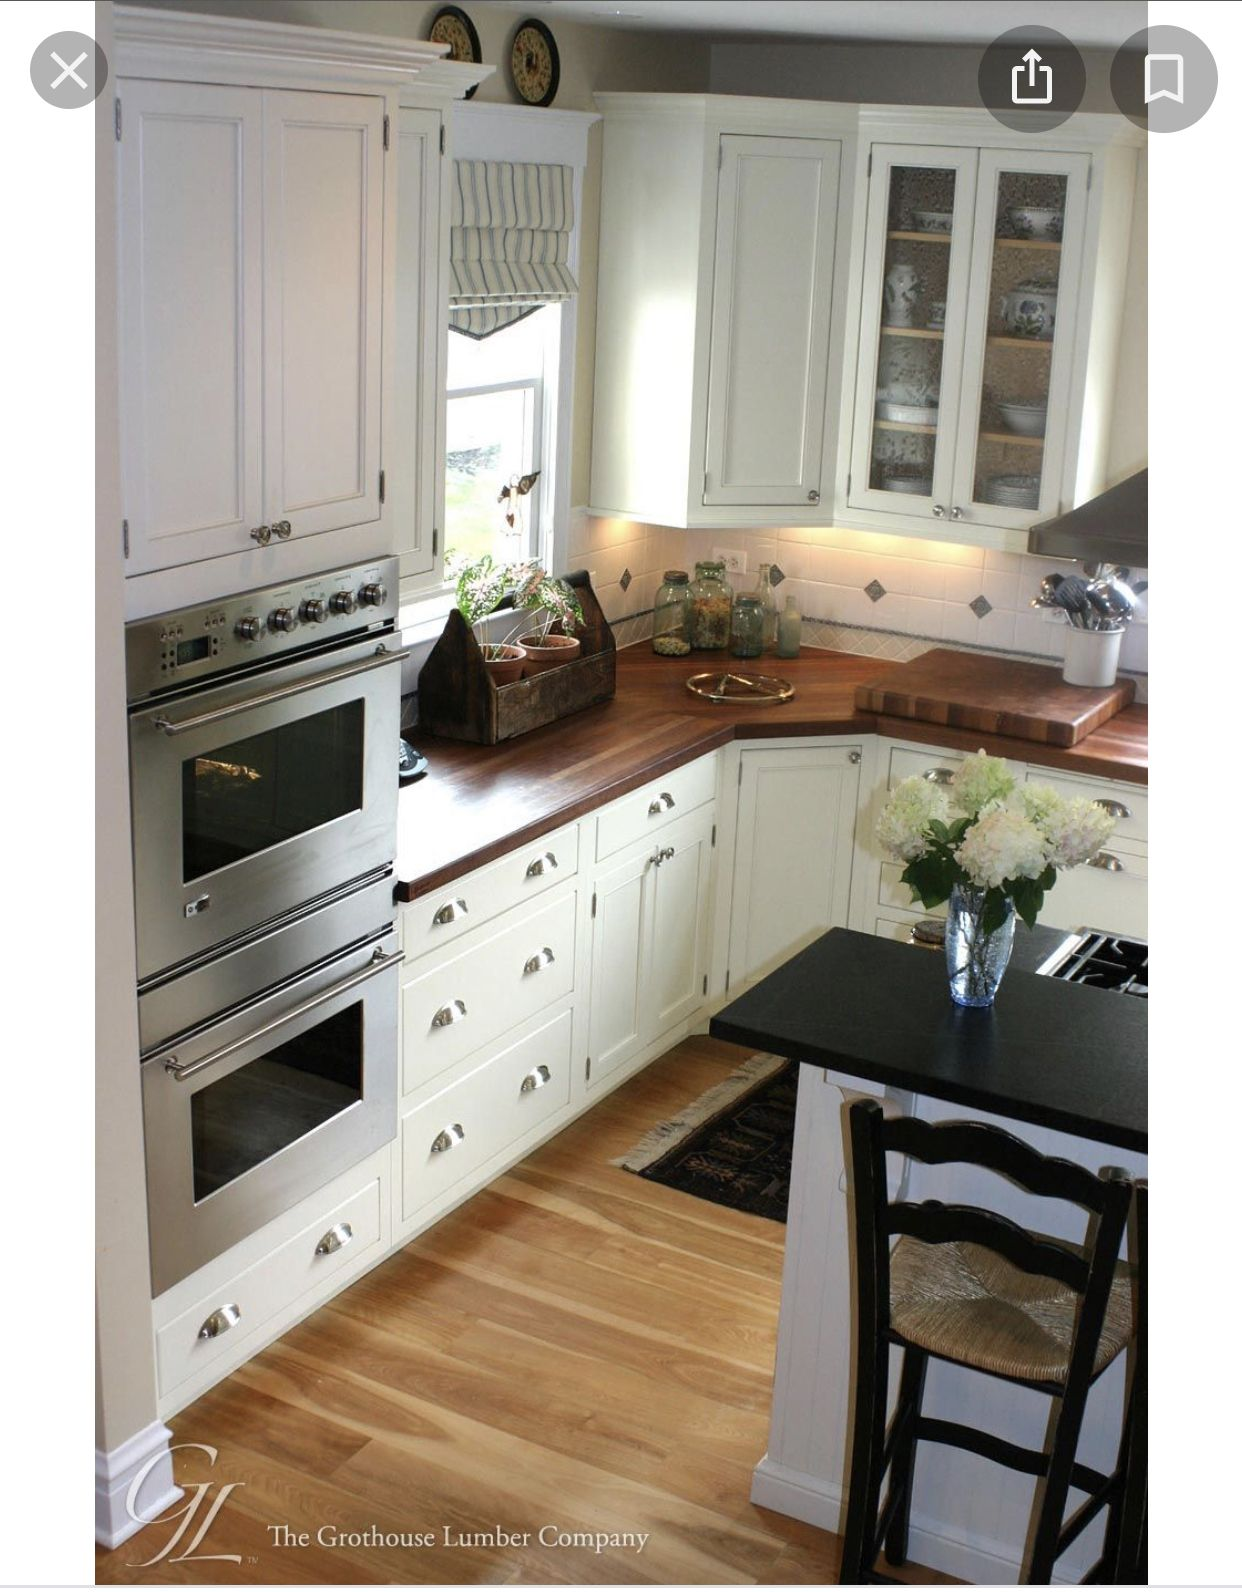 Pin by Shelly Short on Practical kitchen plan in 2020